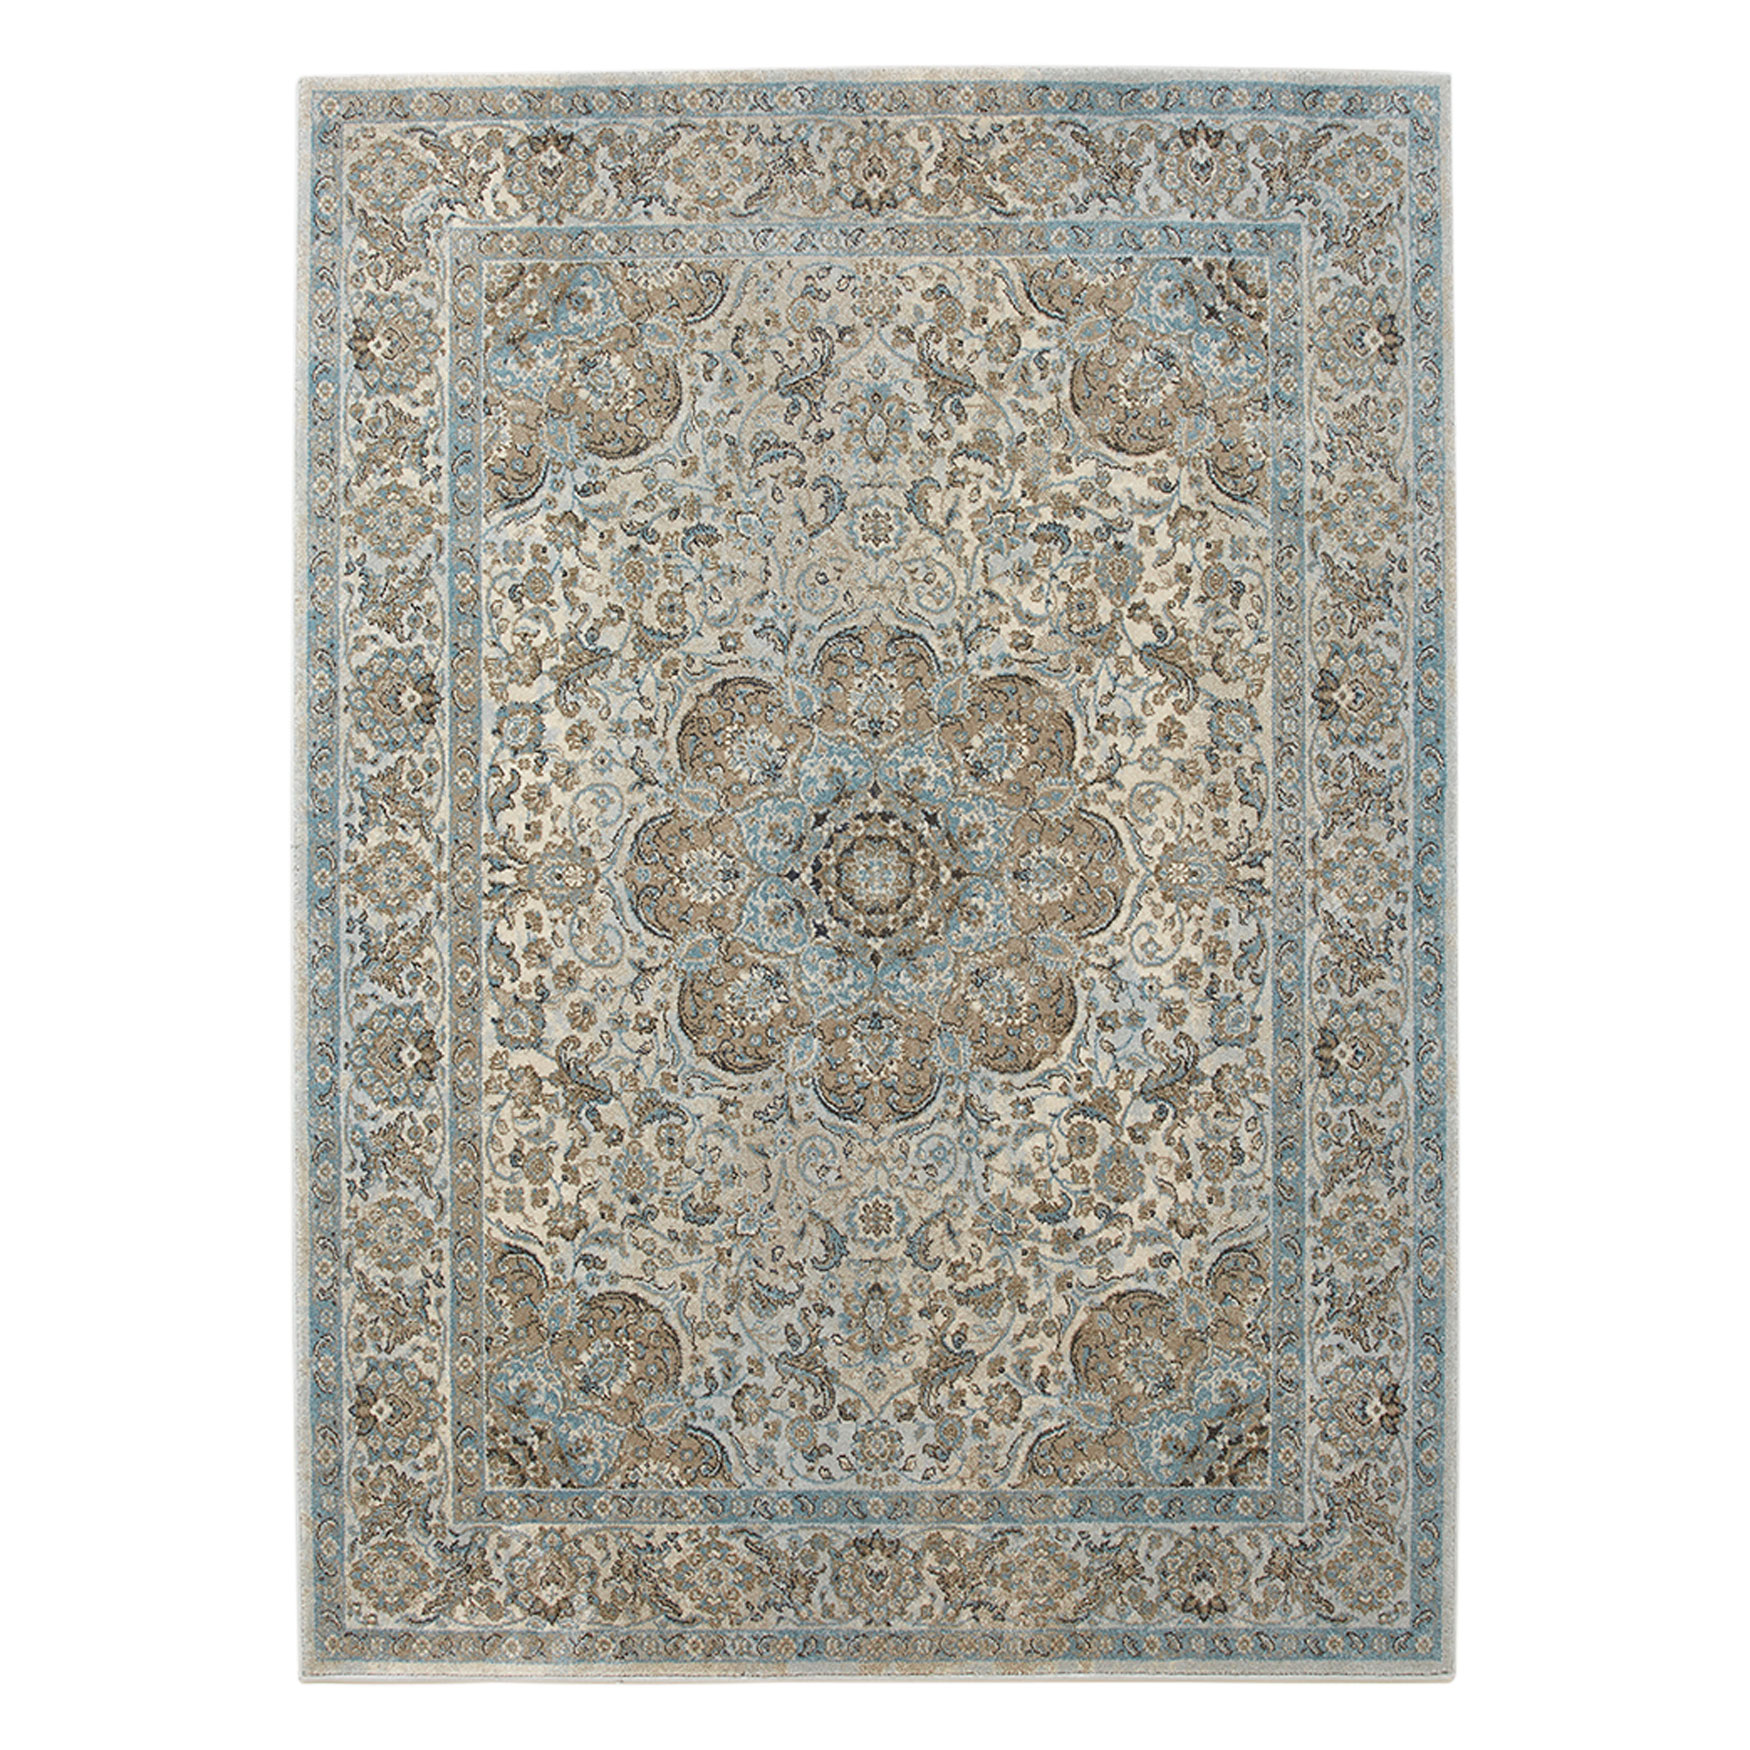 Small Traditional Overdye Rug, BLUE